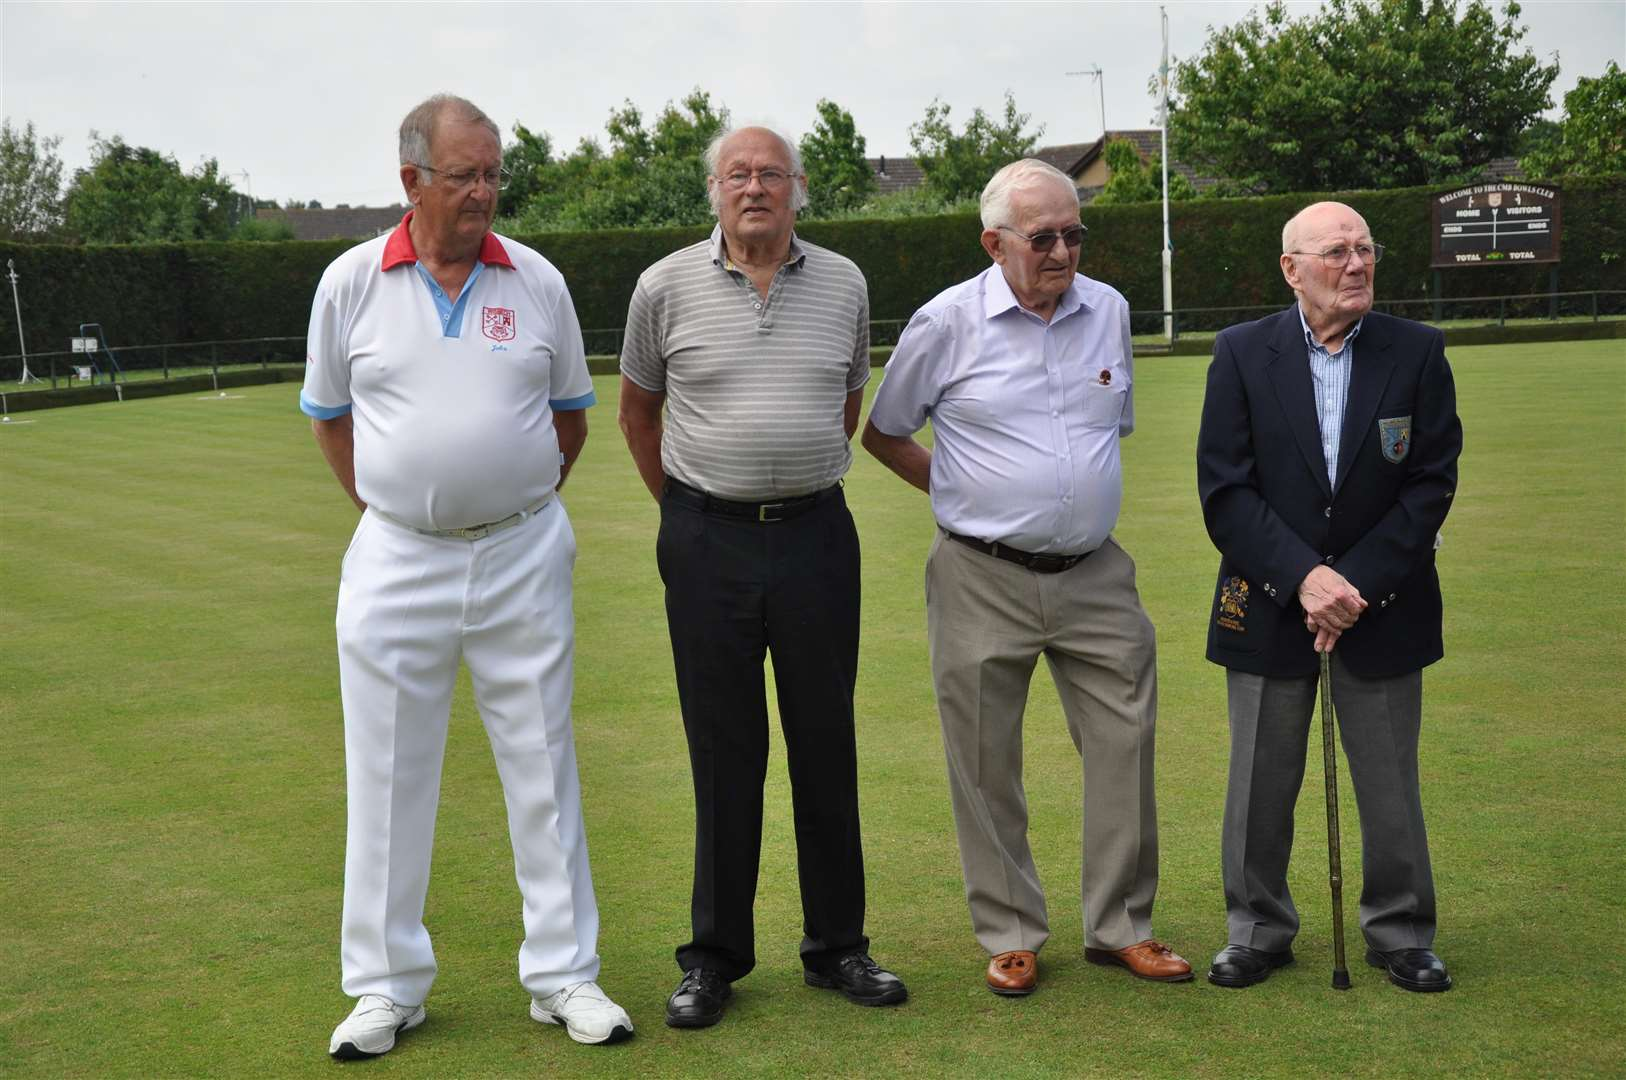 Founder members left to right John Fox Treasurer & Greenkeeper, Terry Semper, Peter Haddon and Terry Slade. (2480215)